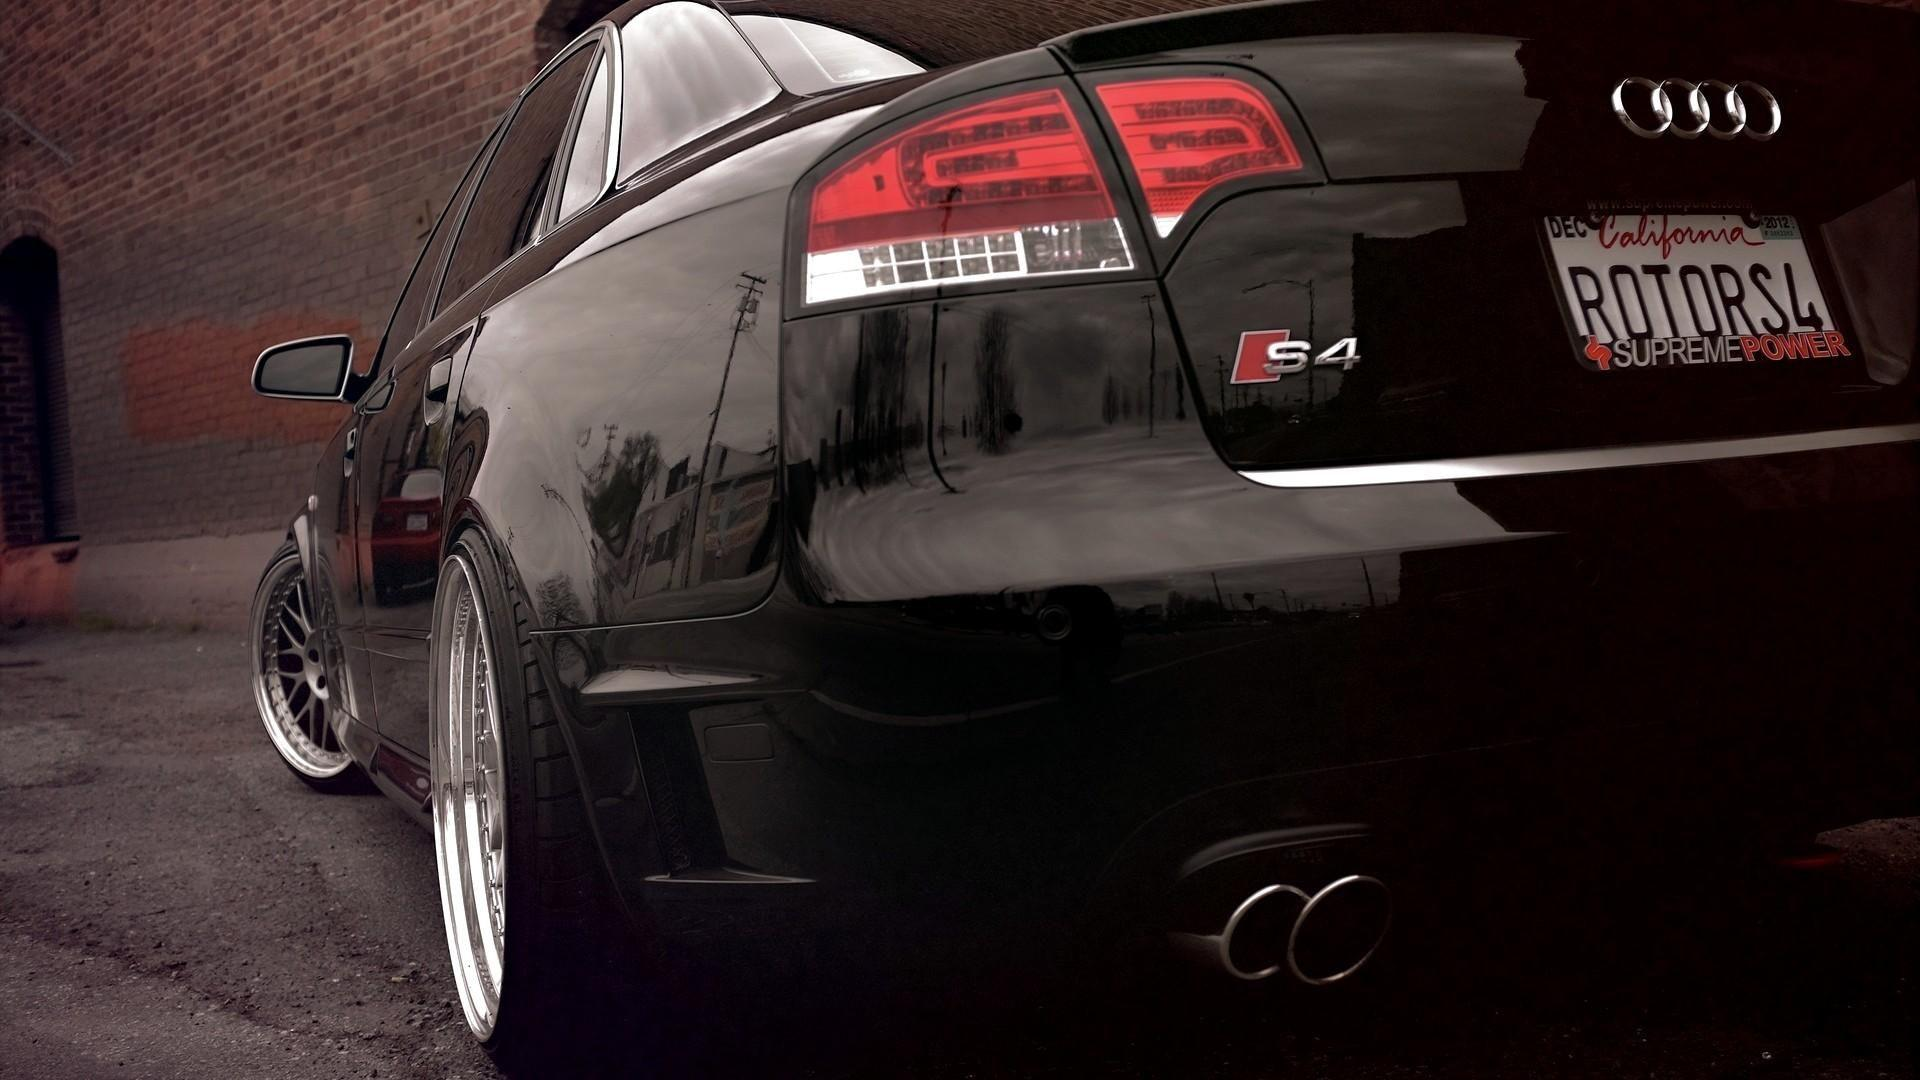 Audi S4 Wallpapers, 37 Audi S4 HD Wallpapers/Backgrounds, Fungyung